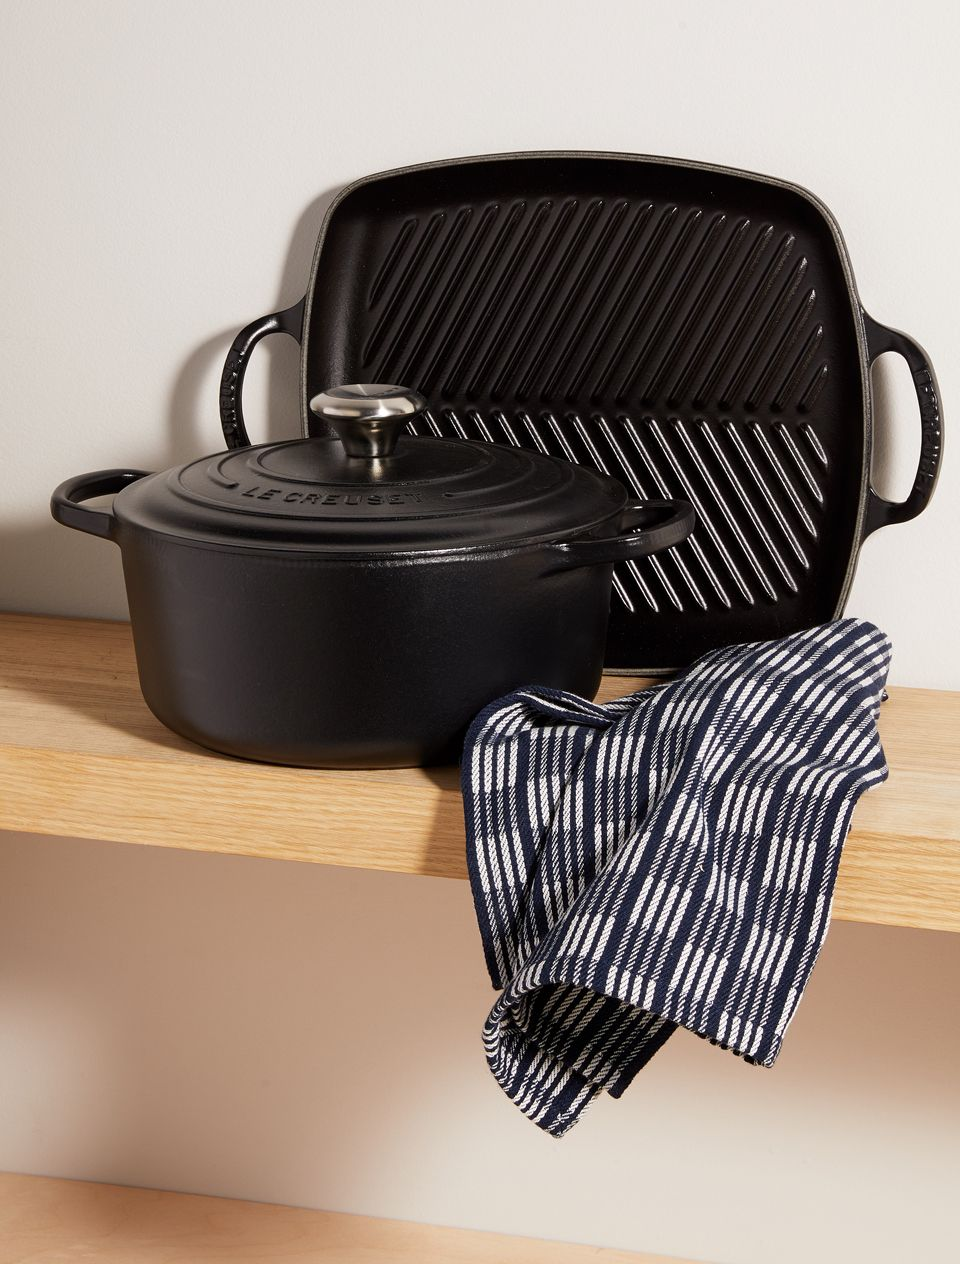 fathers day edit cookware